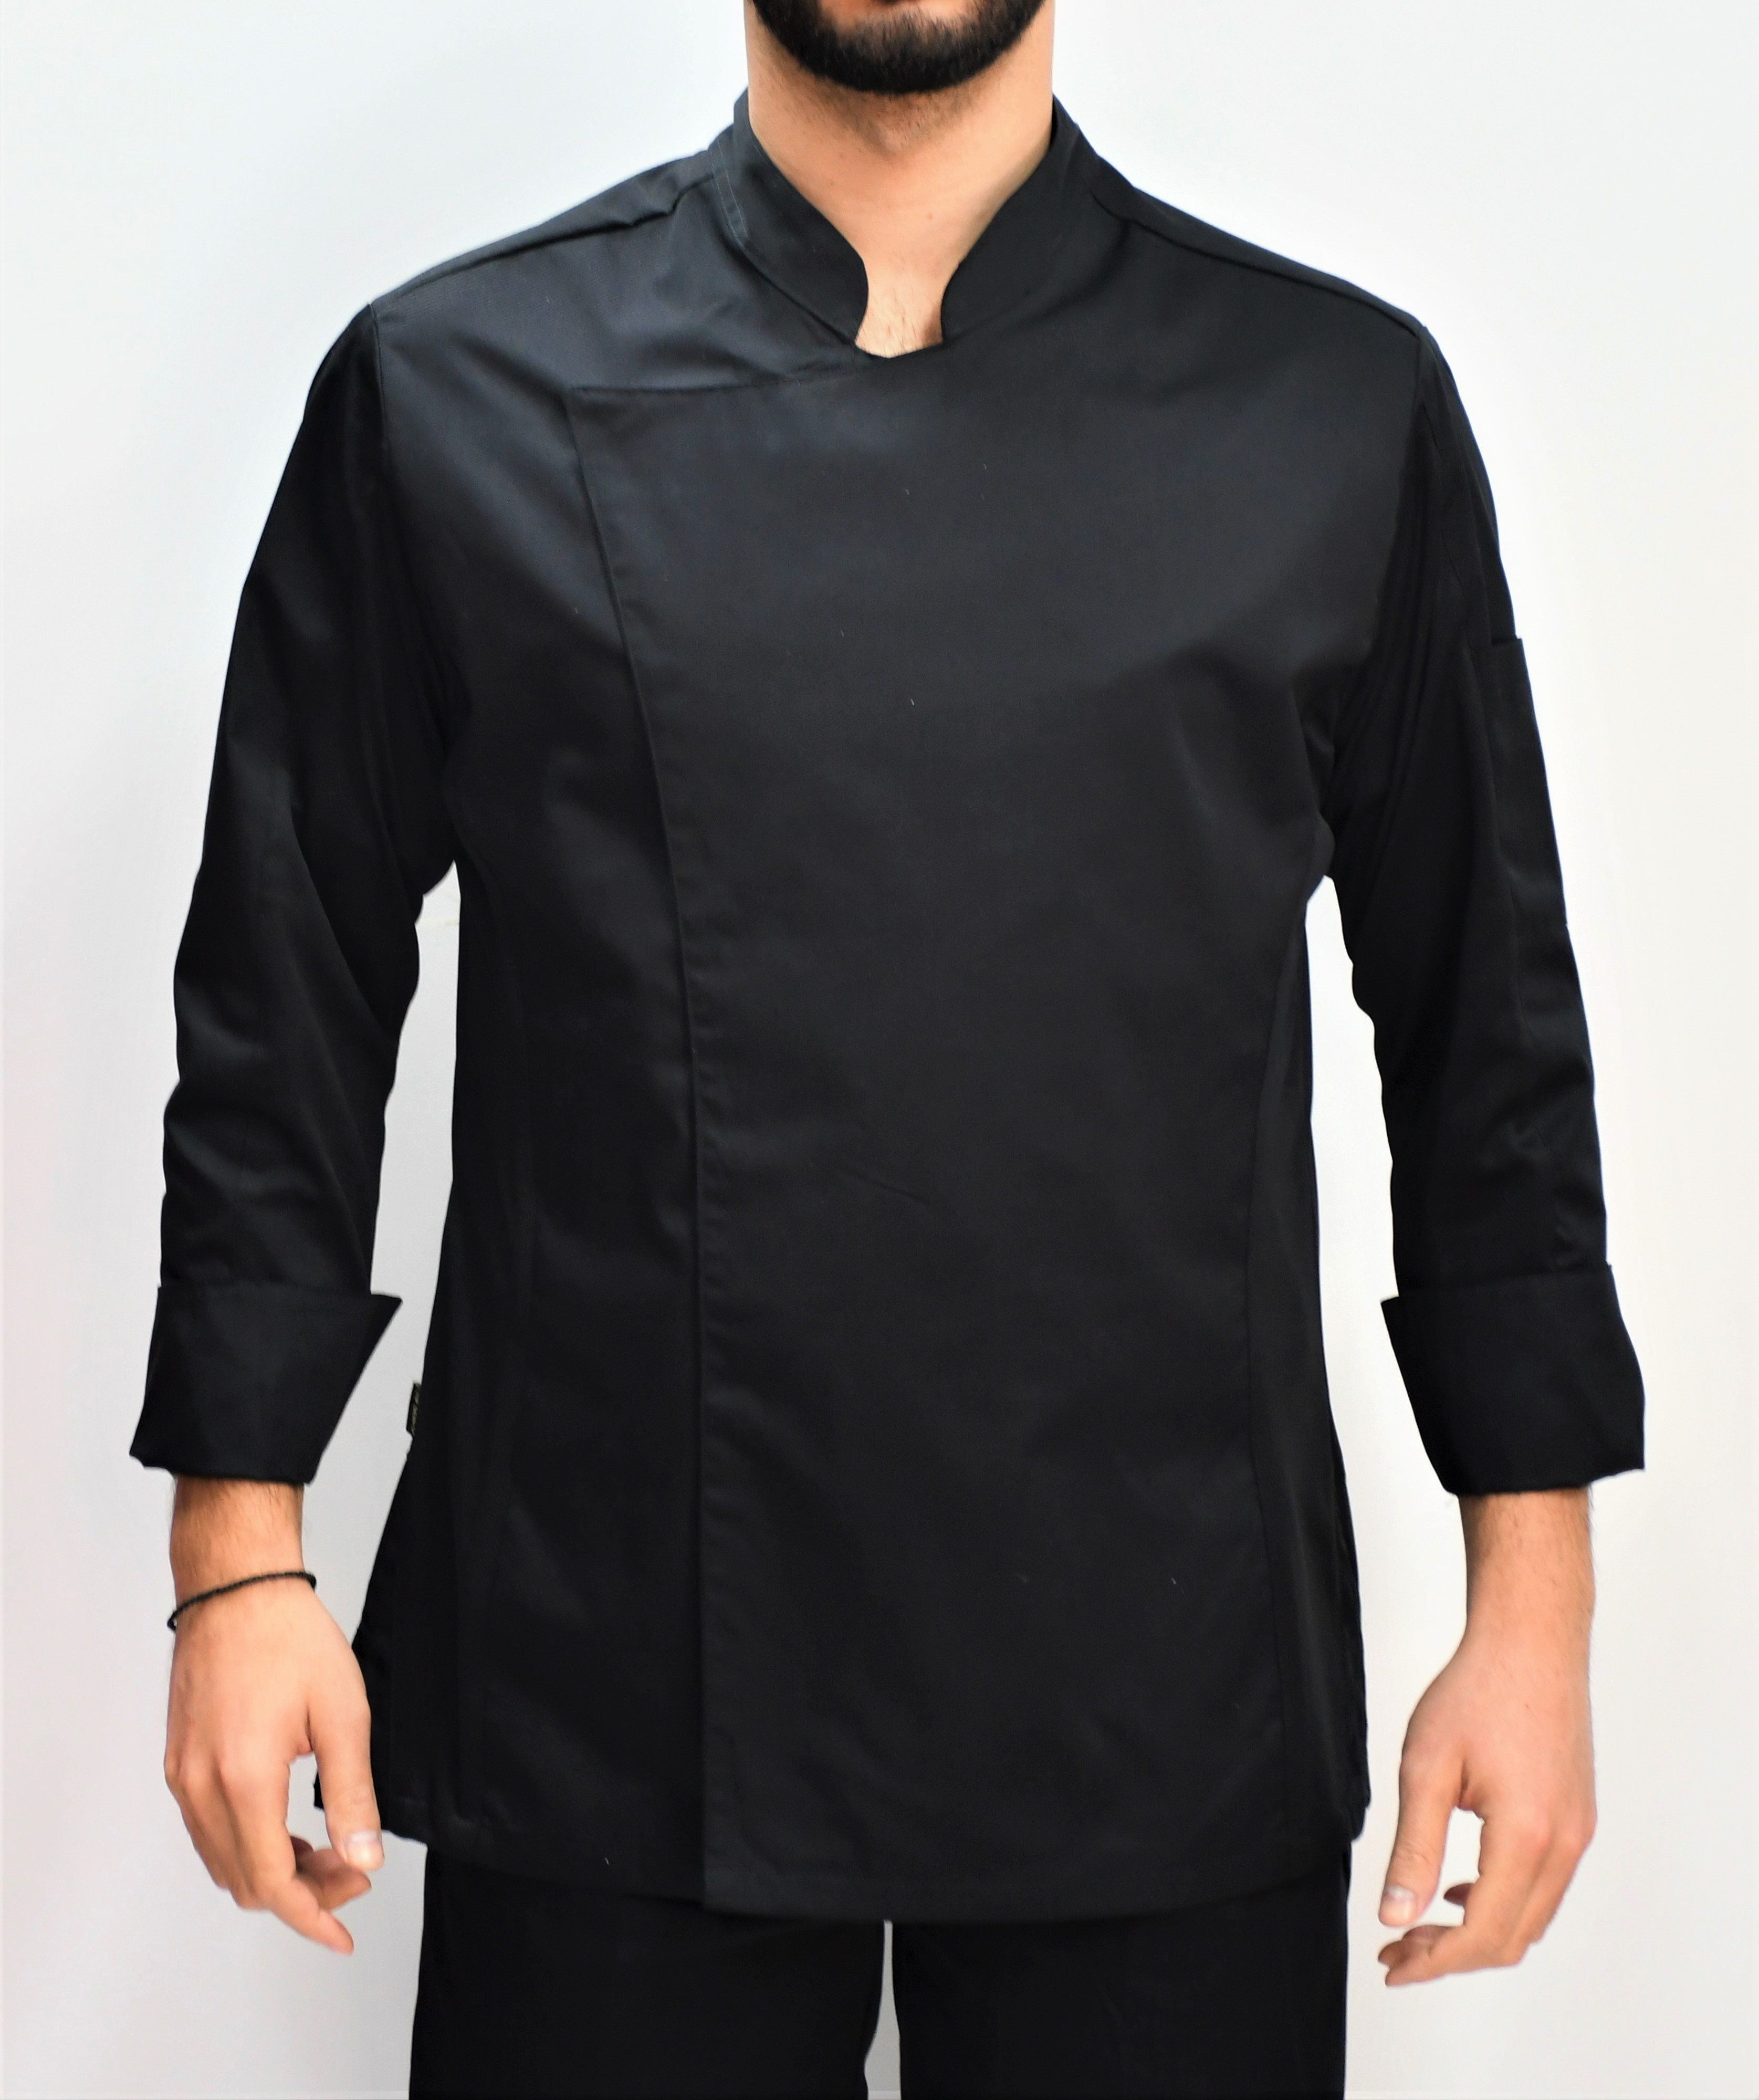 ΜΠΛΟΥΖΑ CHEF DRY FIT BLACK